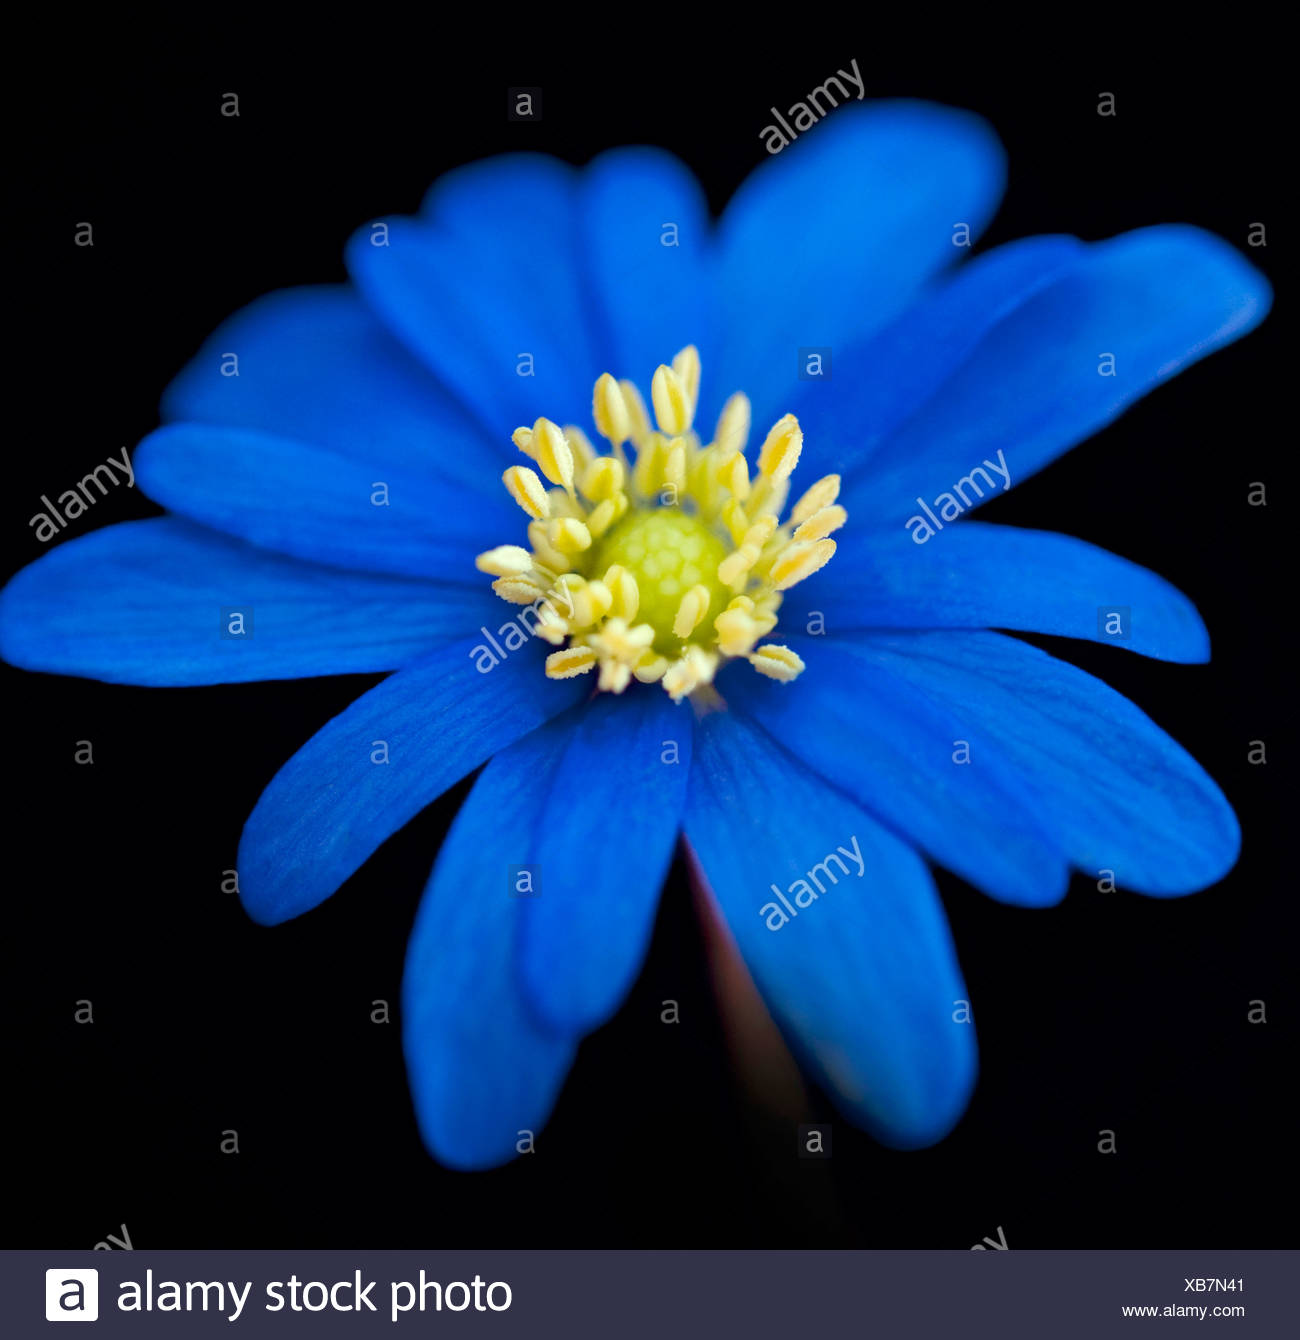 Anemone, single blue flower against a black background. - Stock Image